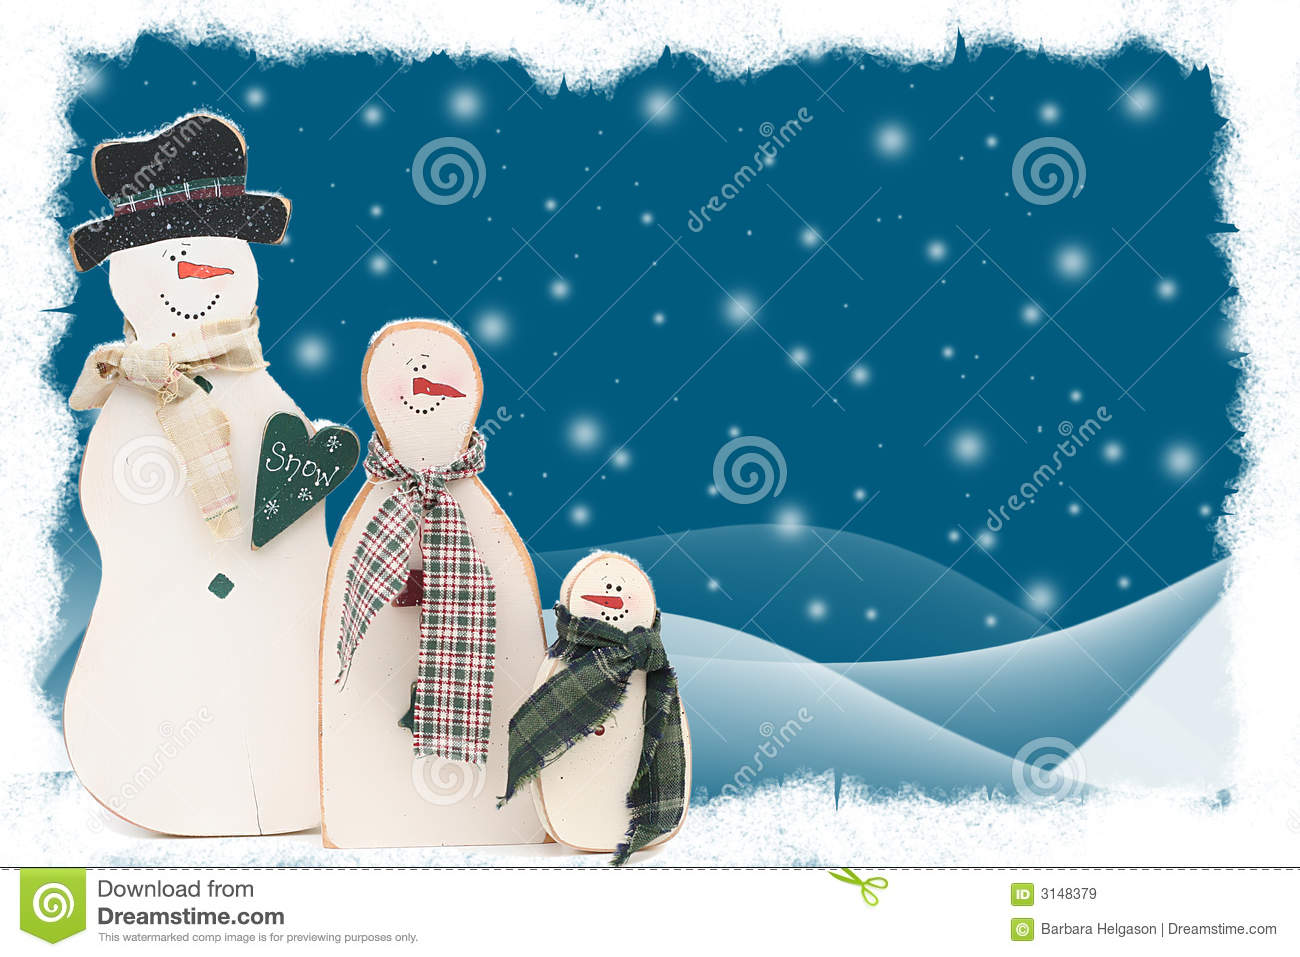 snowman family wallpaper - photo #6